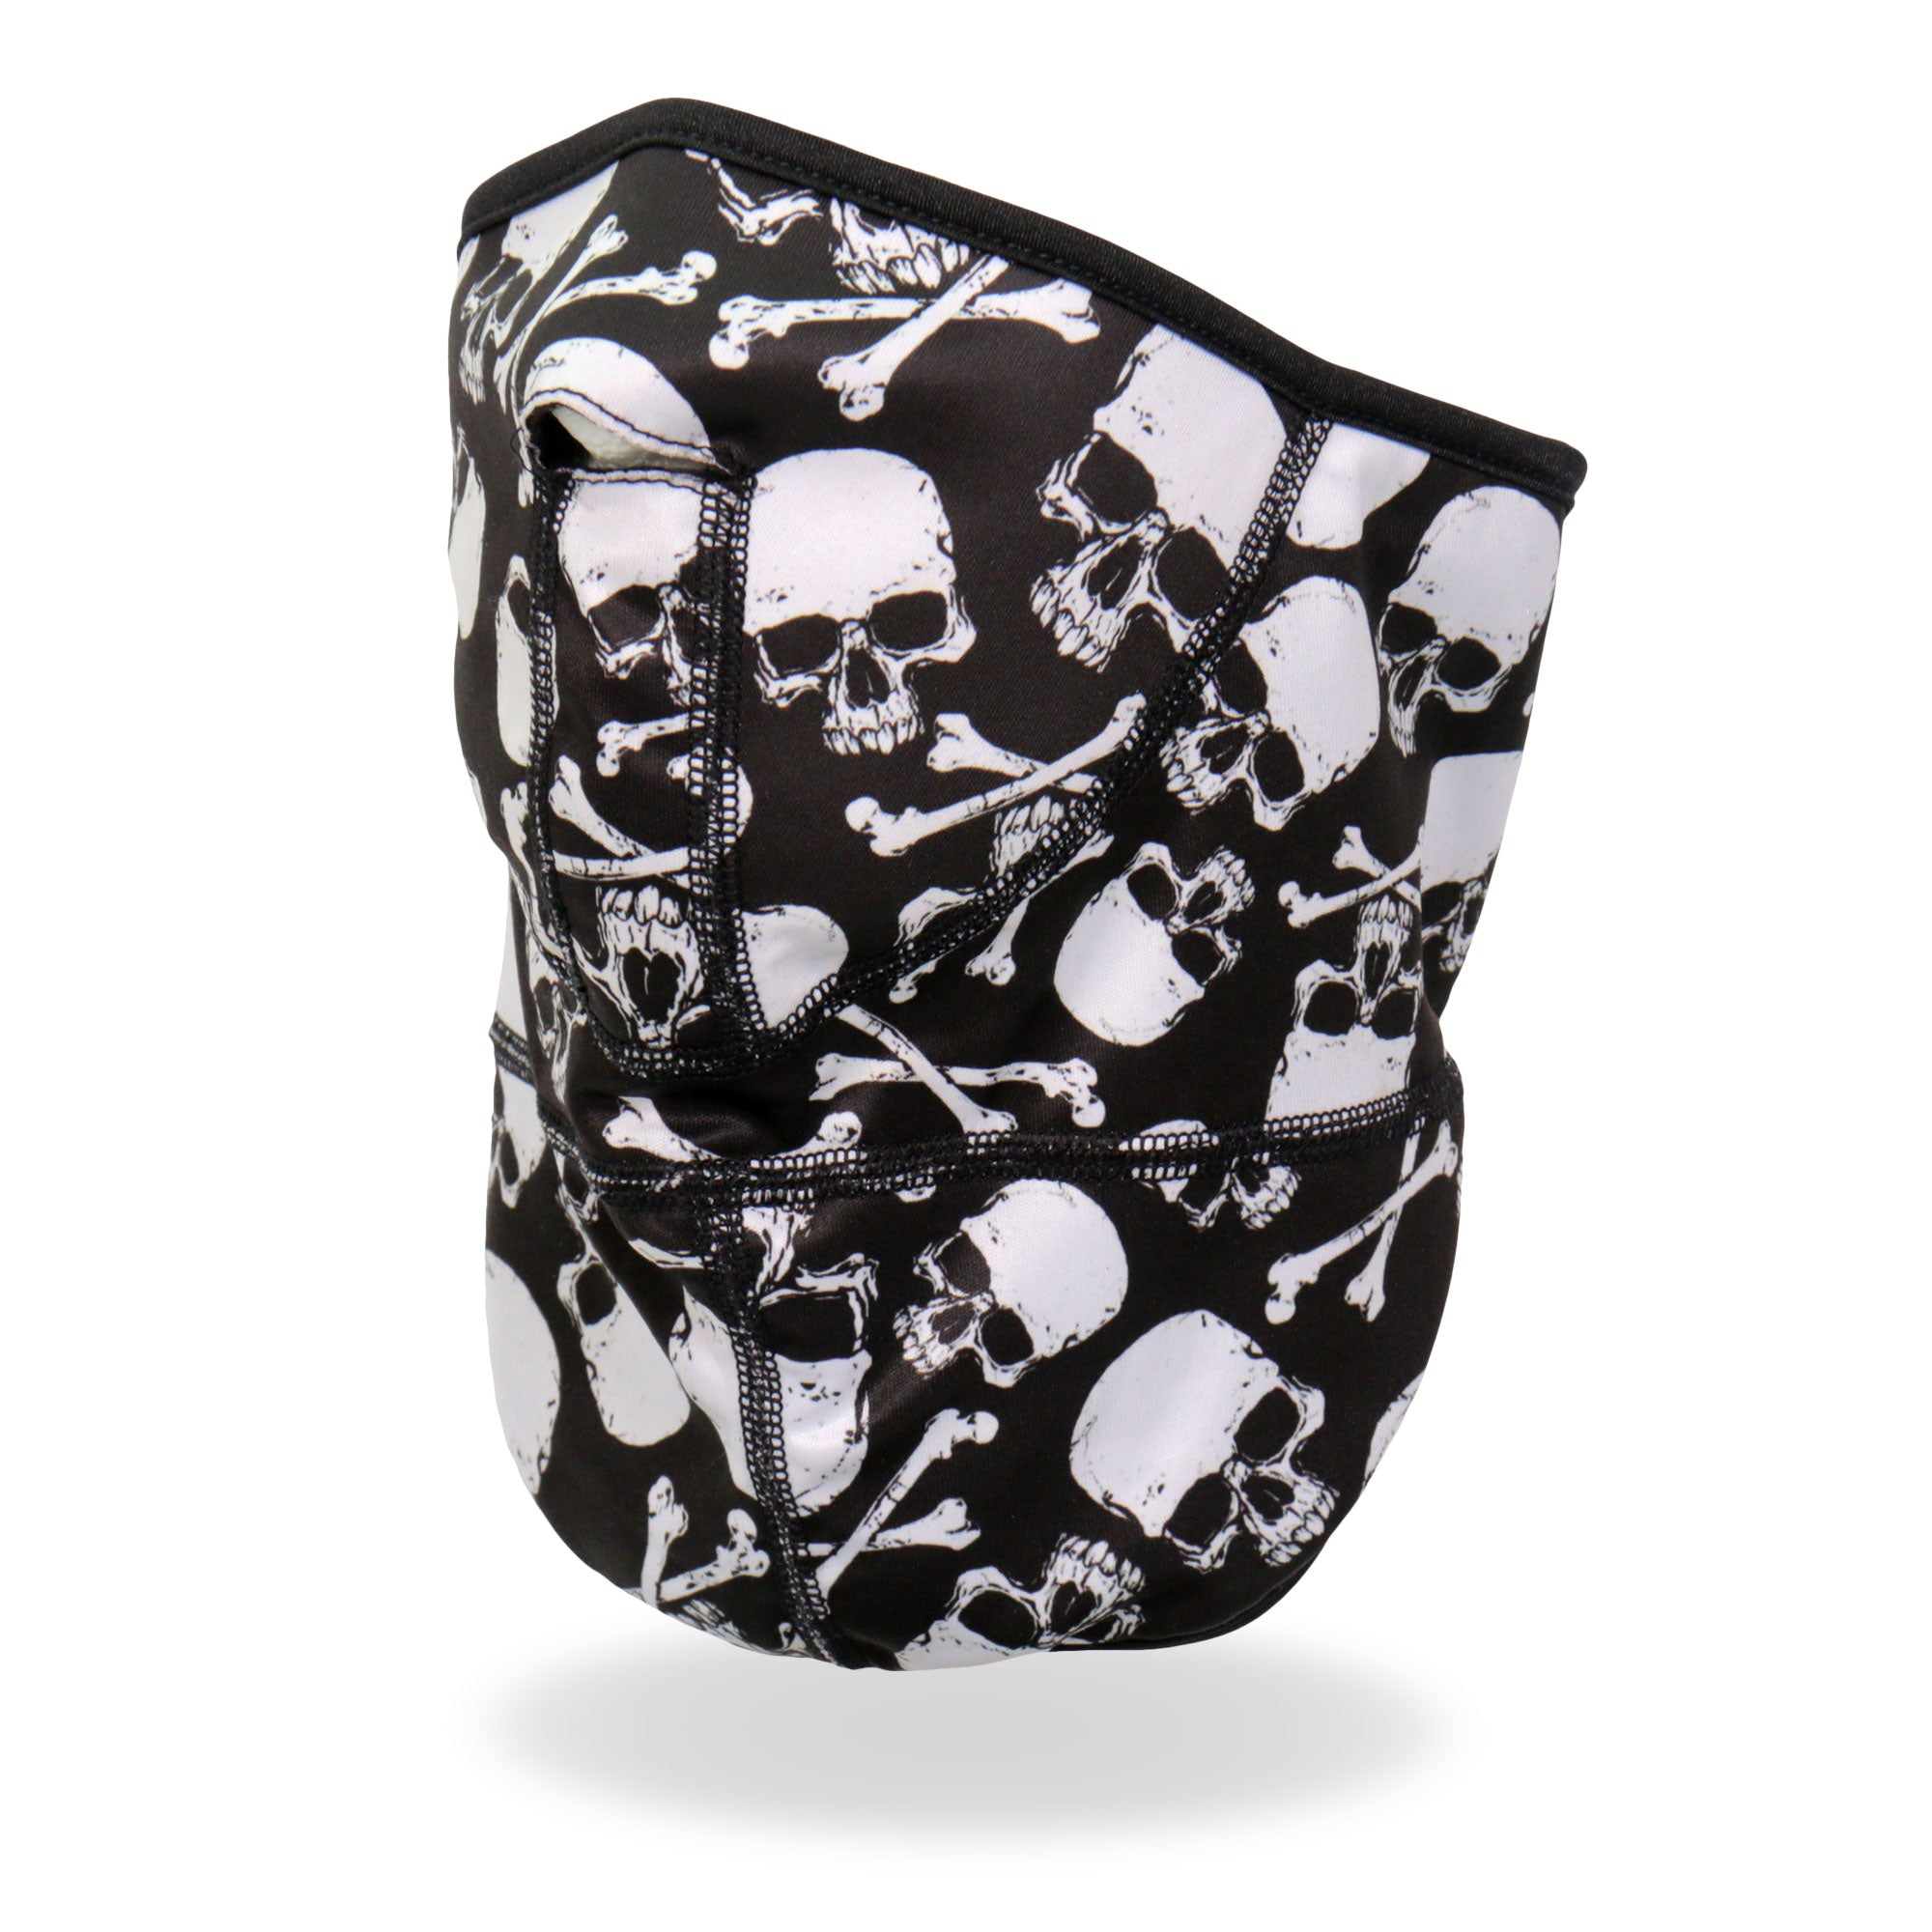 Hot Leathers Skull and Crossbones Face Wrap